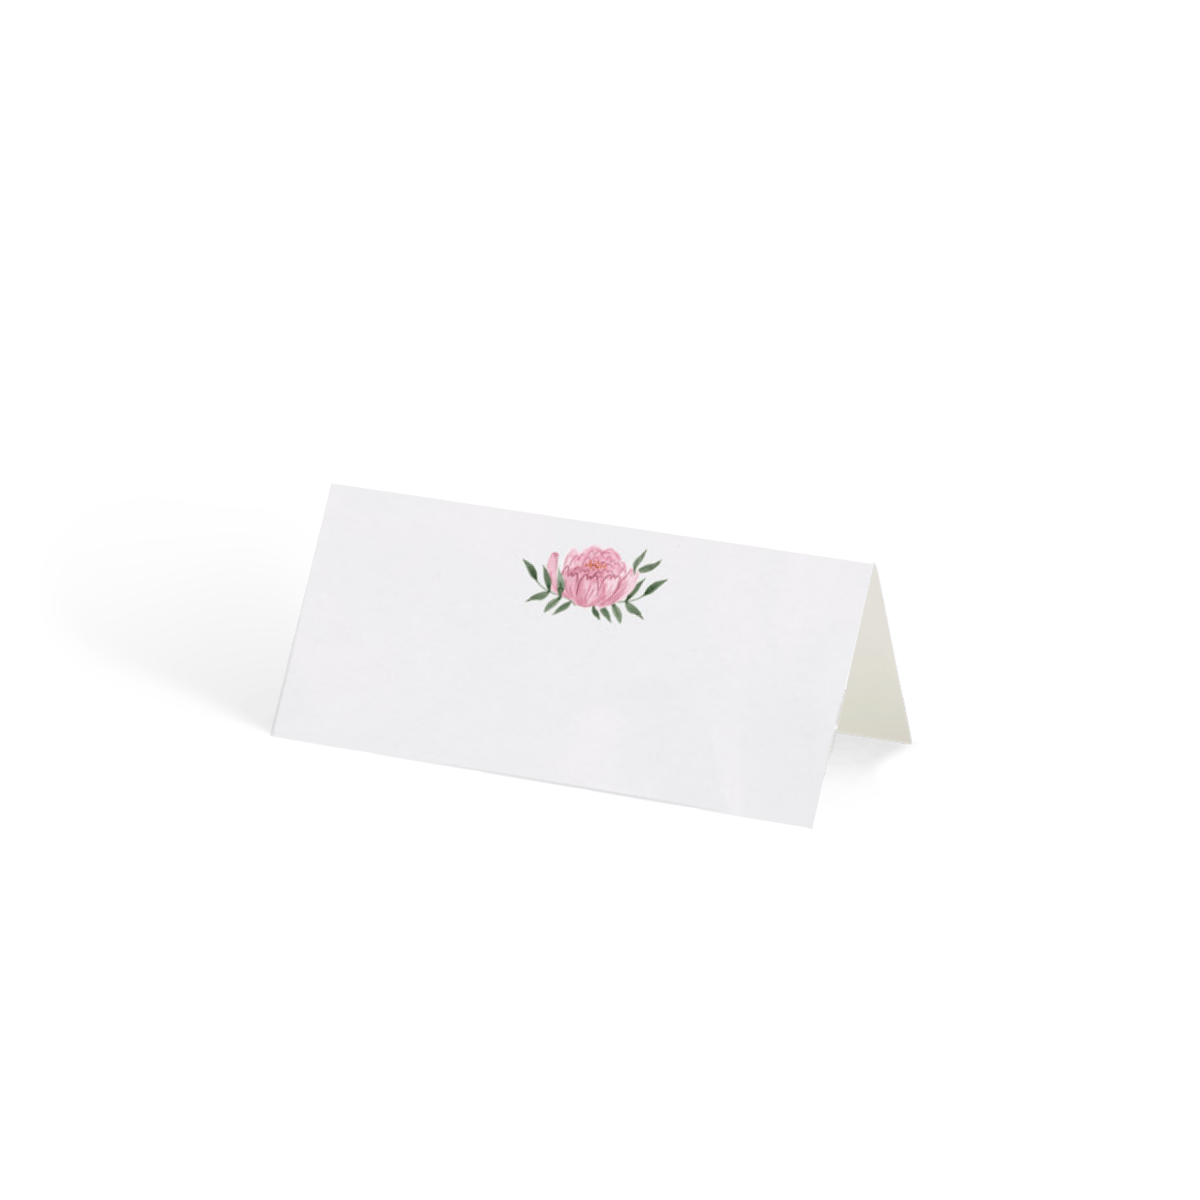 Https%3a%2f%2fwww.papier.com%2fproduct image%2f69725%2f8%2fdusky peonies 16484 front 1553091780.png?ixlib=rb 1.1